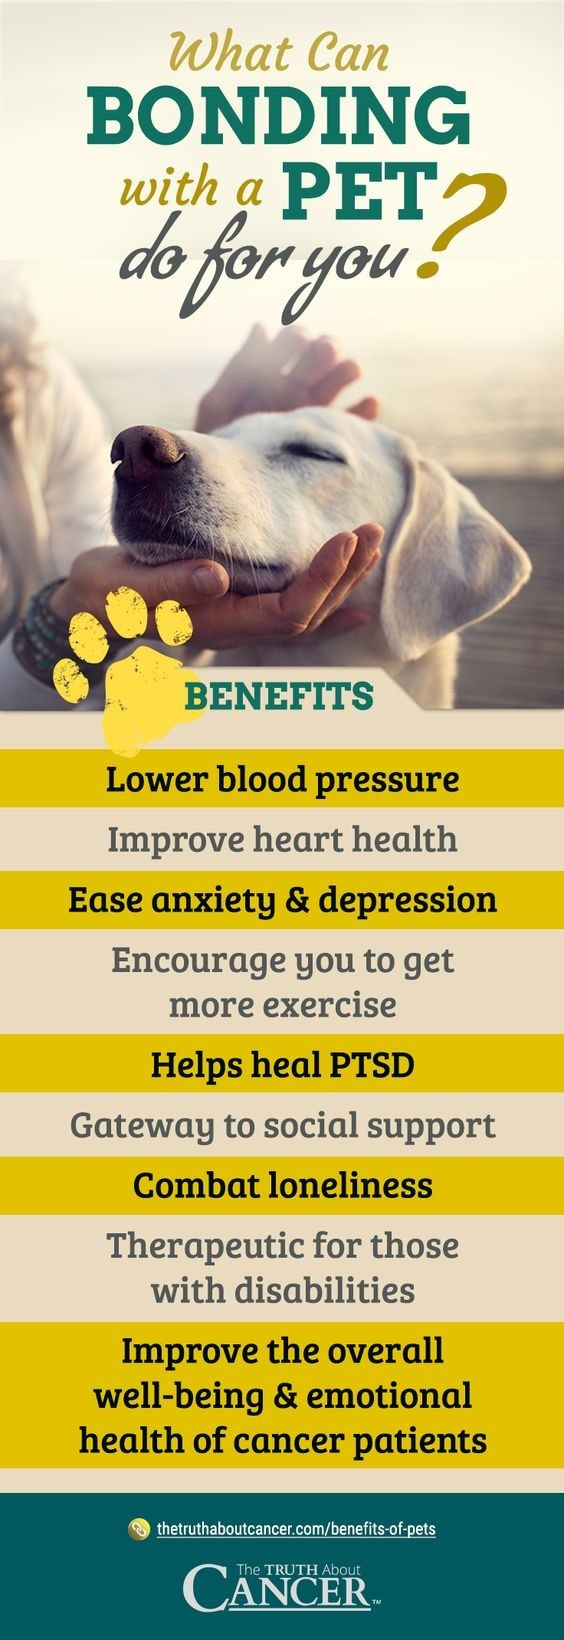 Dog breed - What Can BONDING with a PET? de for you BENEFITS Lower blood pressure Improve heart health Ease anxiety & depression Encourage you to get more exercise Helps heal PTSD Gateway to social support Combat loneliness Therapeutic for those with disabilities Improve the overall well-being & emotional health of cancer patients thetruthaboutcancer.com/benefits-of-pets CANCER The TRUTH About